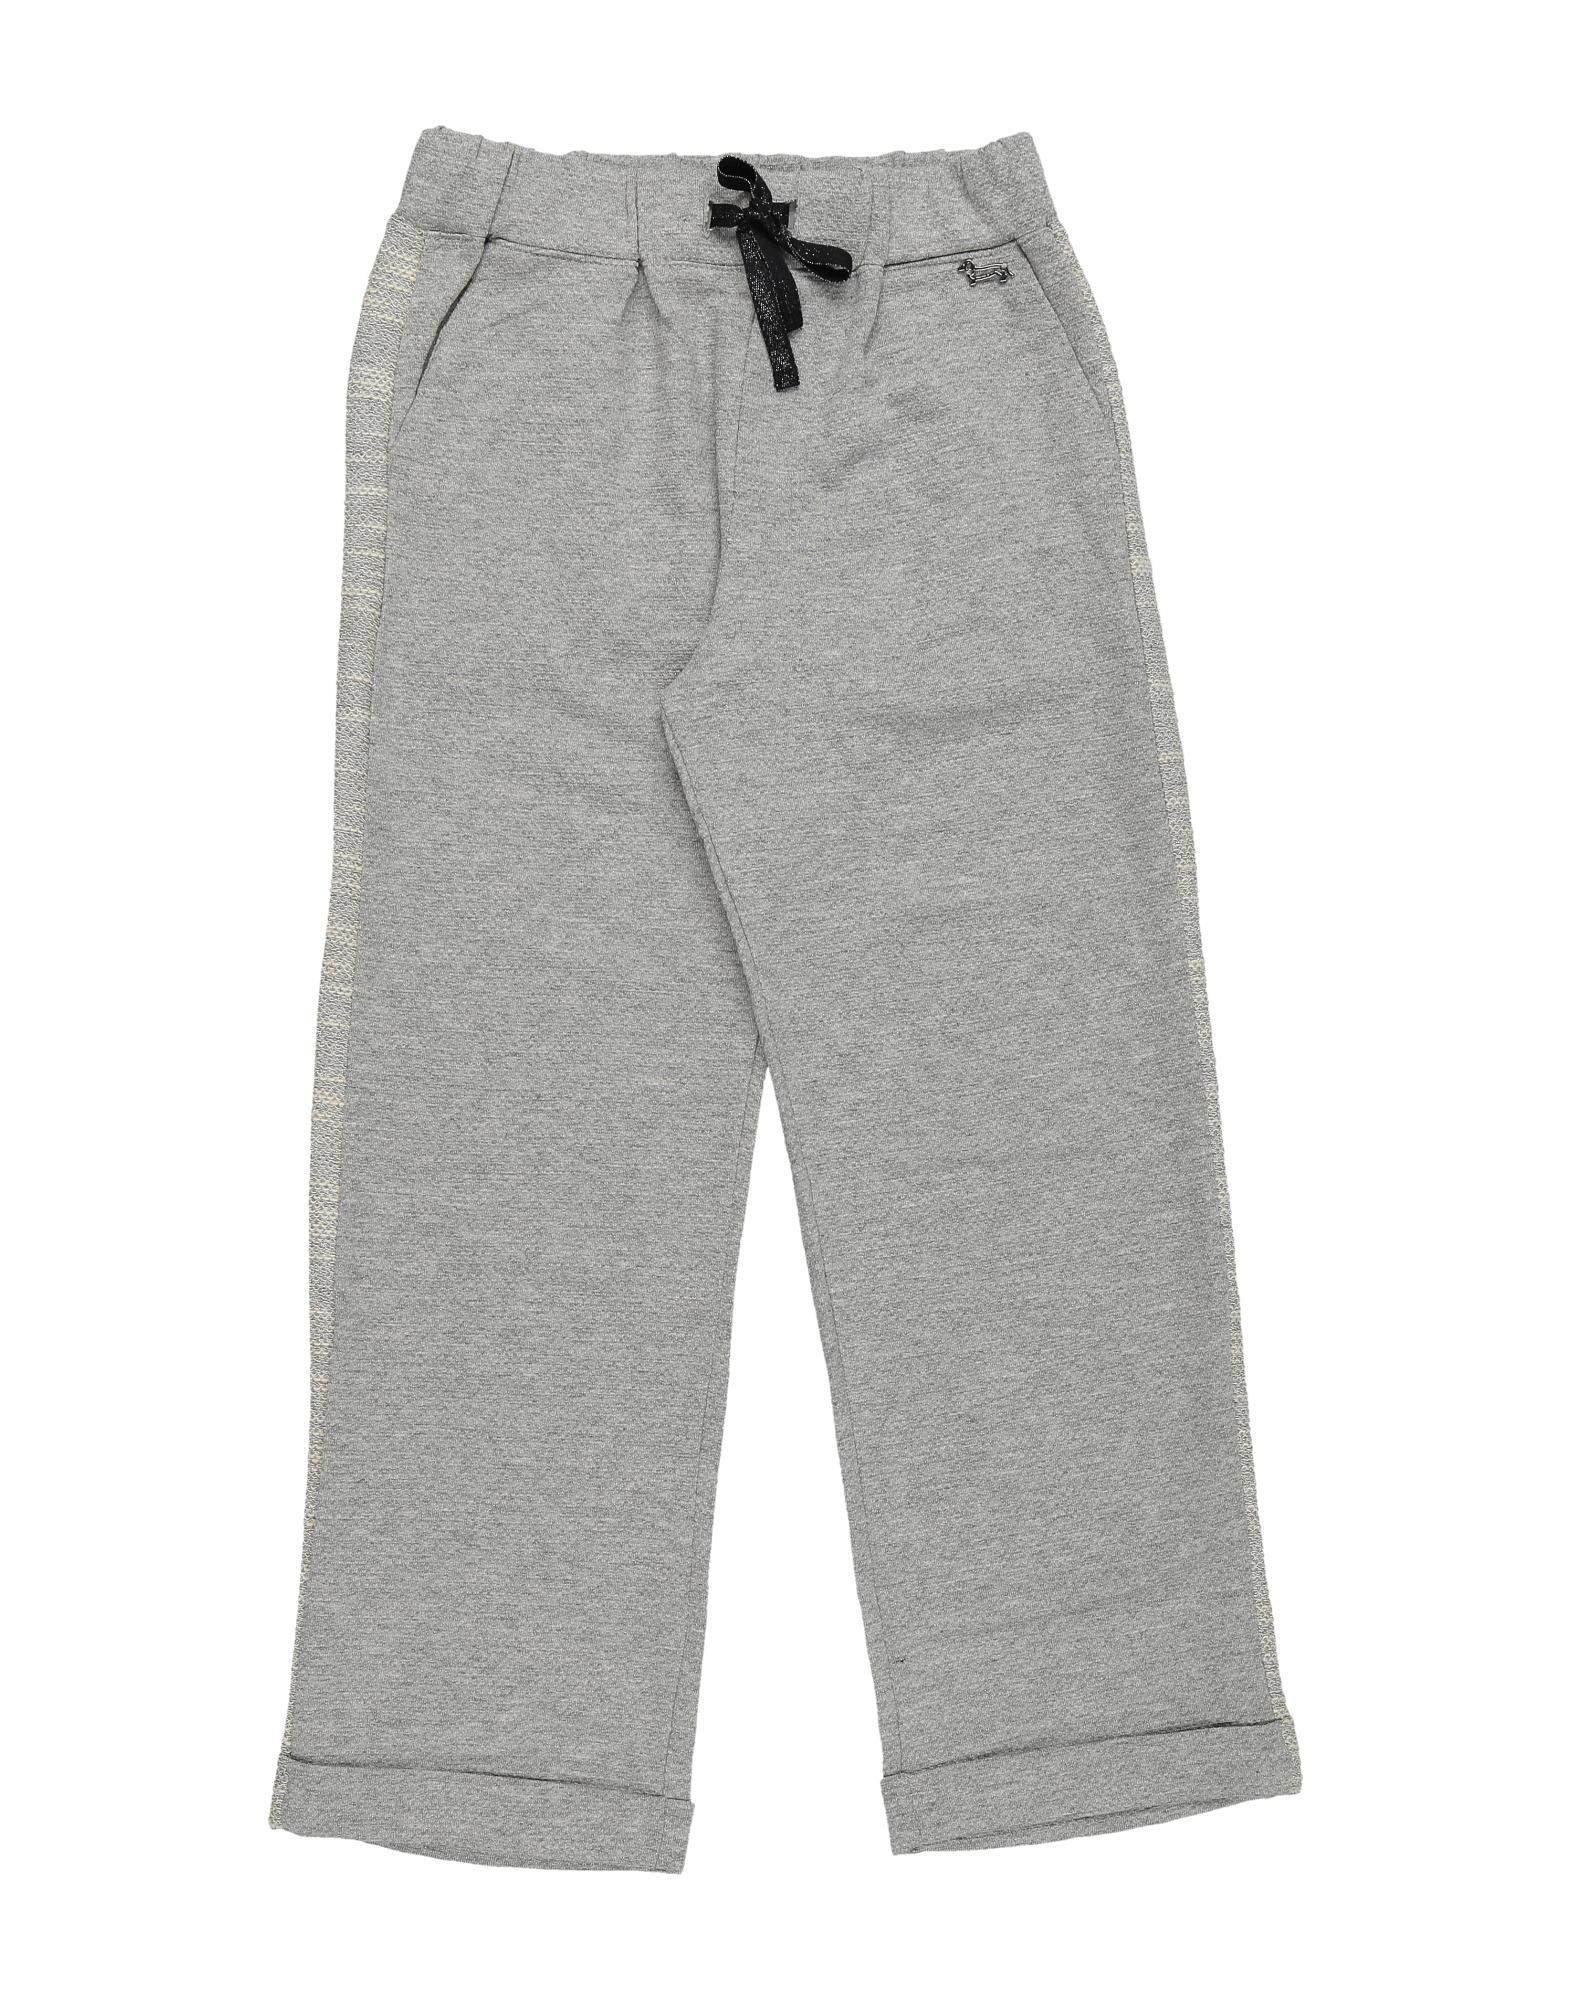 Harmont & Blaine Kids' Casual Pants In Gray